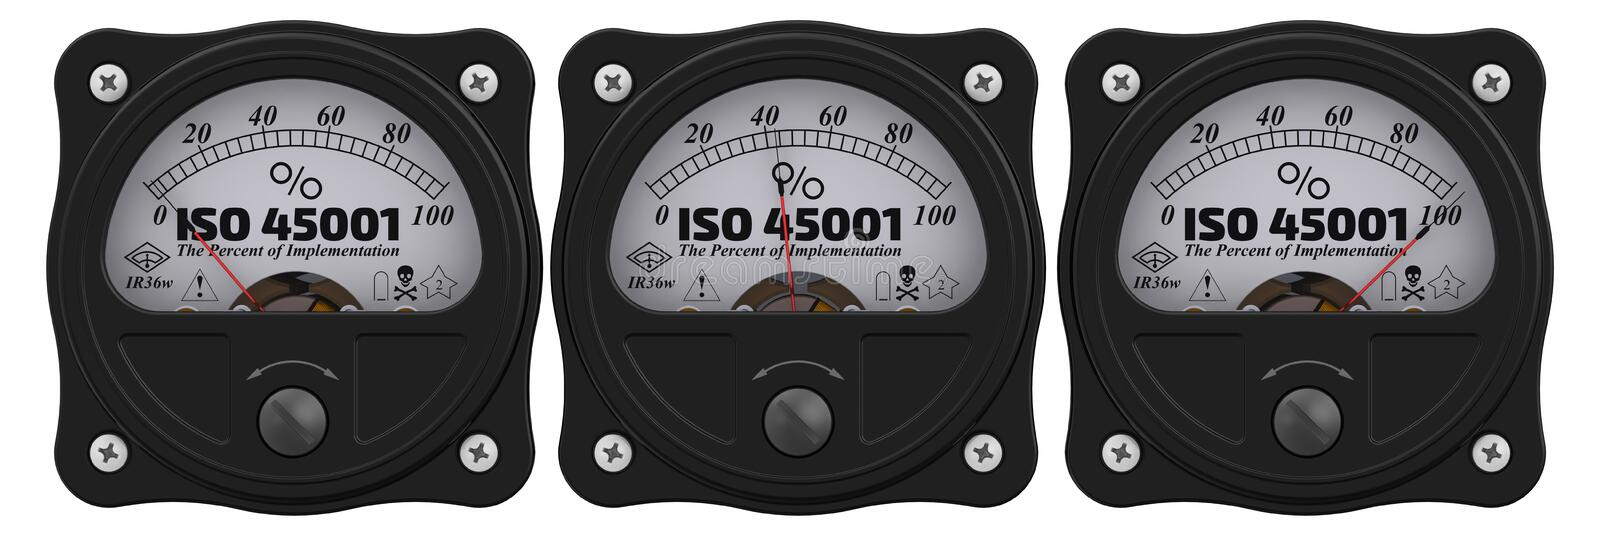 ISO 45001 De percenten van implementatie indicator vector illustratie